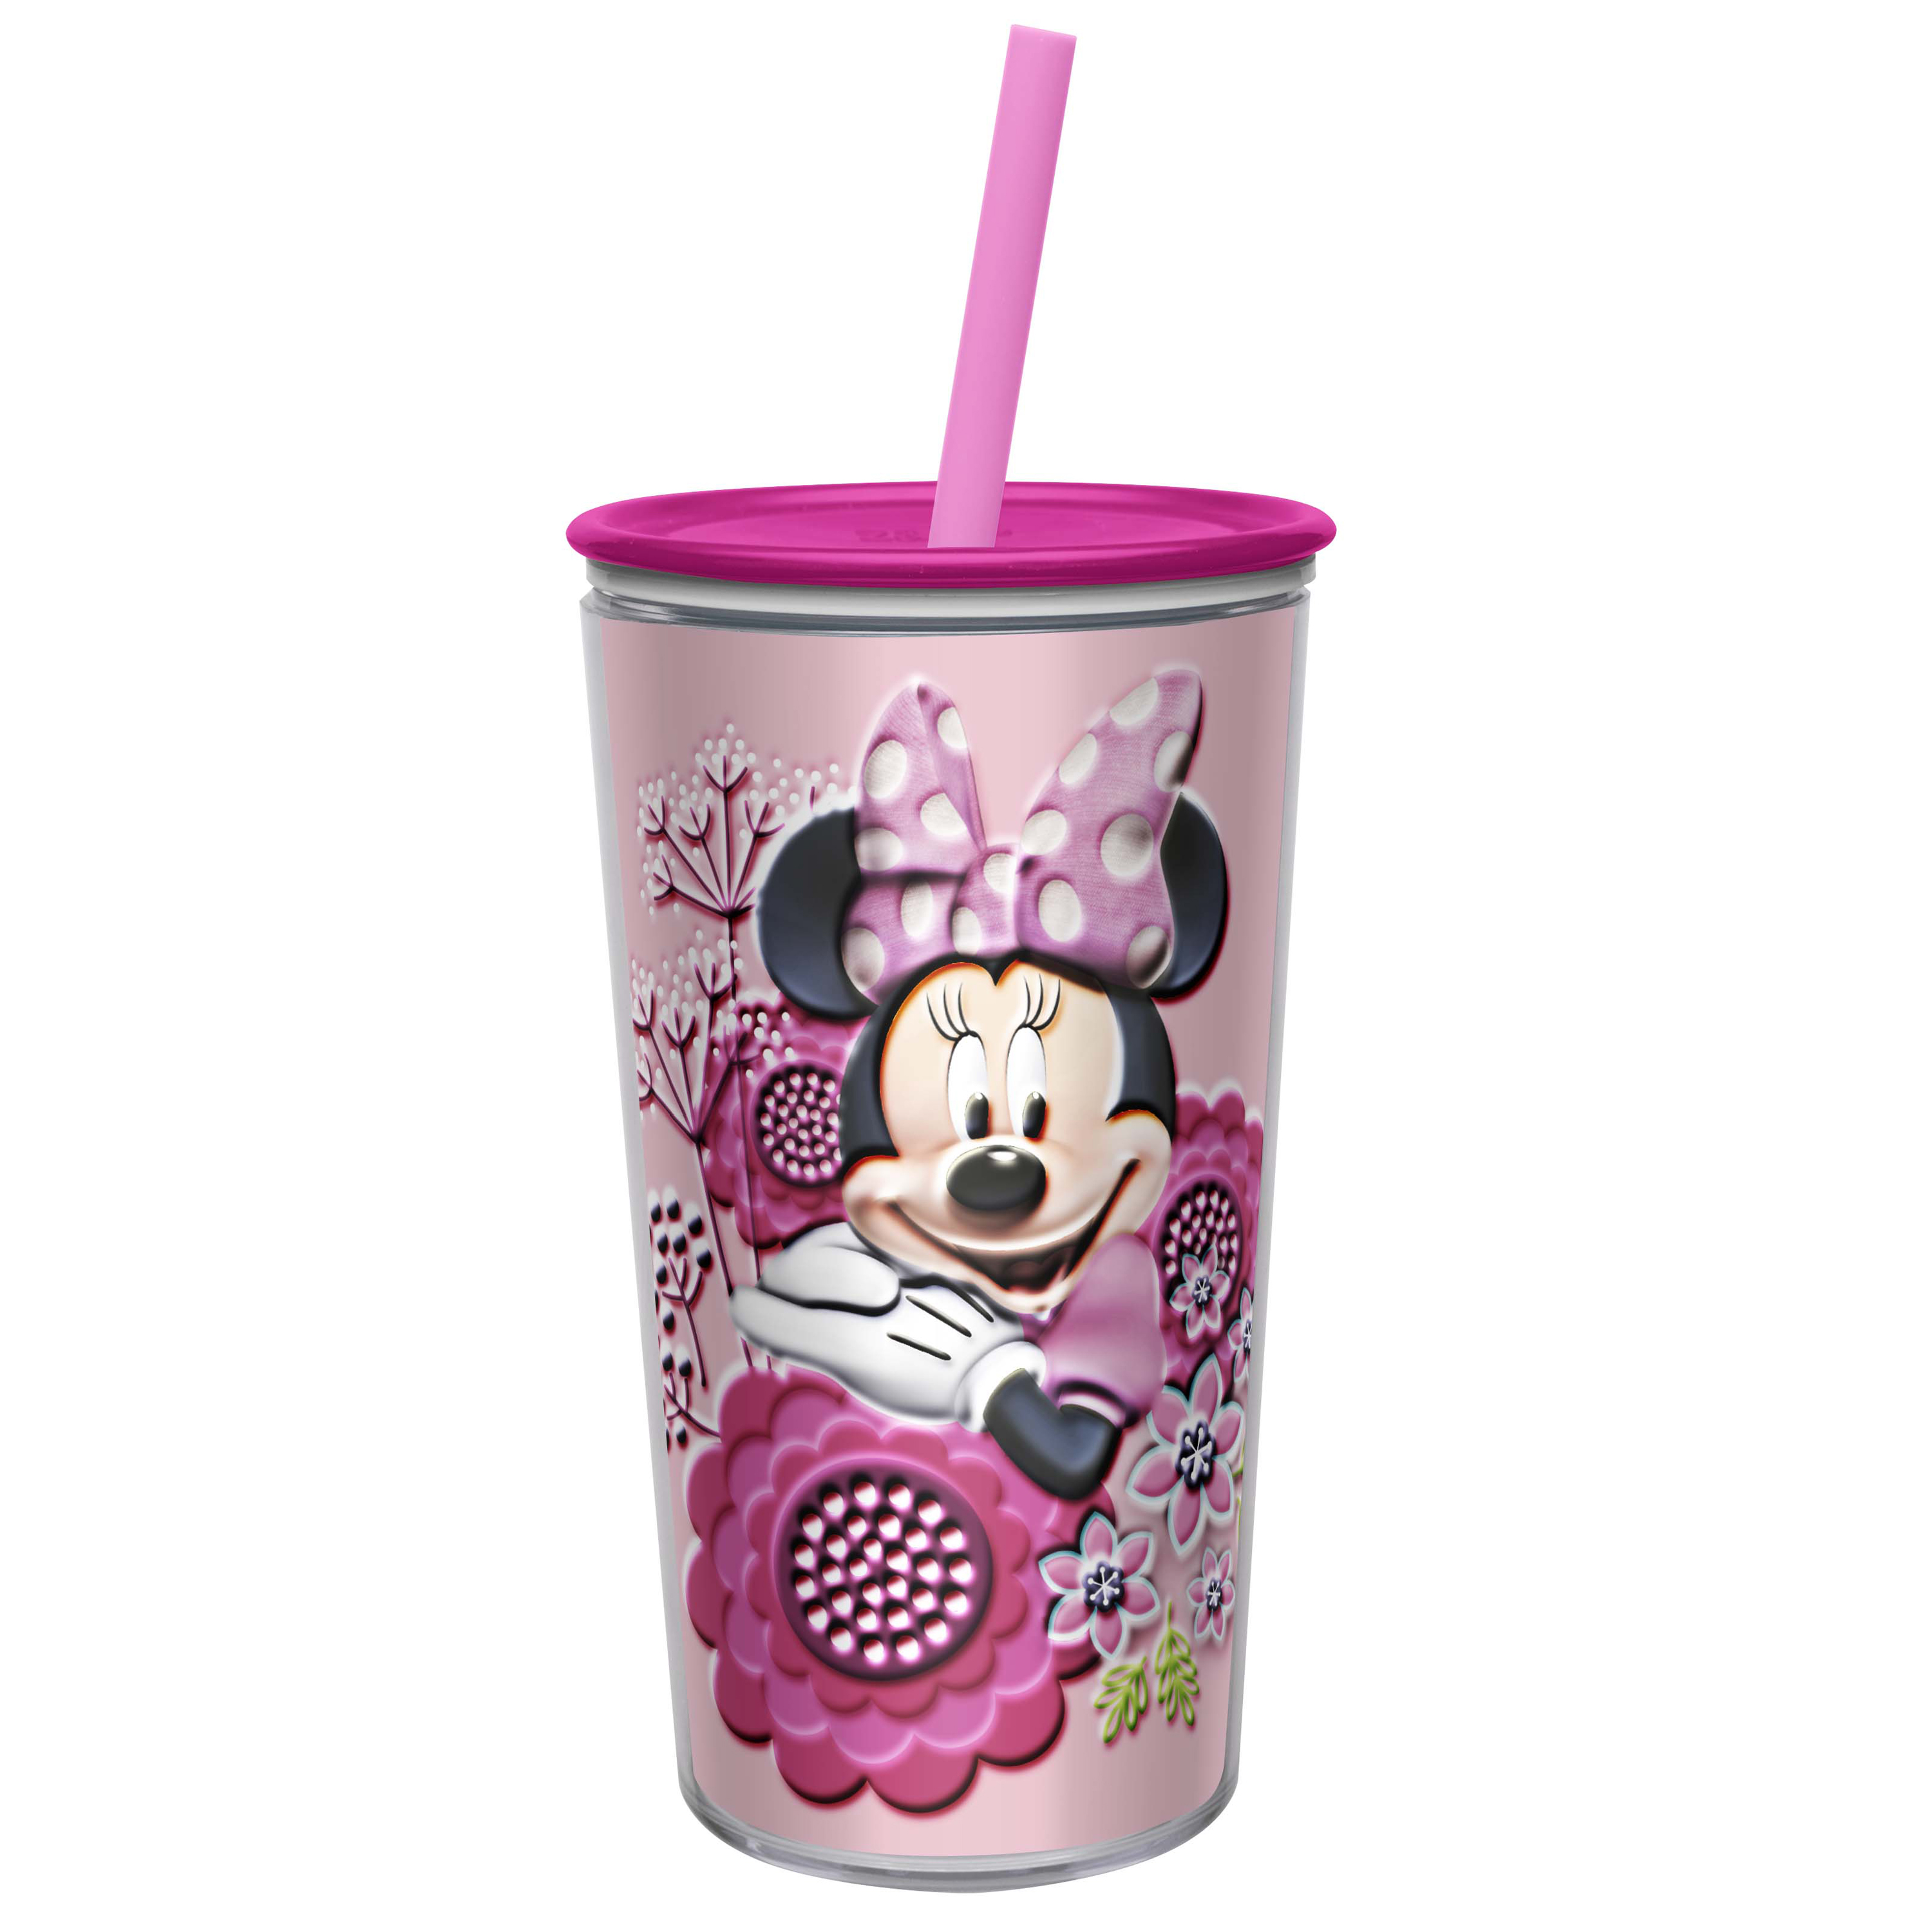 Disney 10.5 ounce Kid's Tumbler, Minnie Mouse slideshow image 1